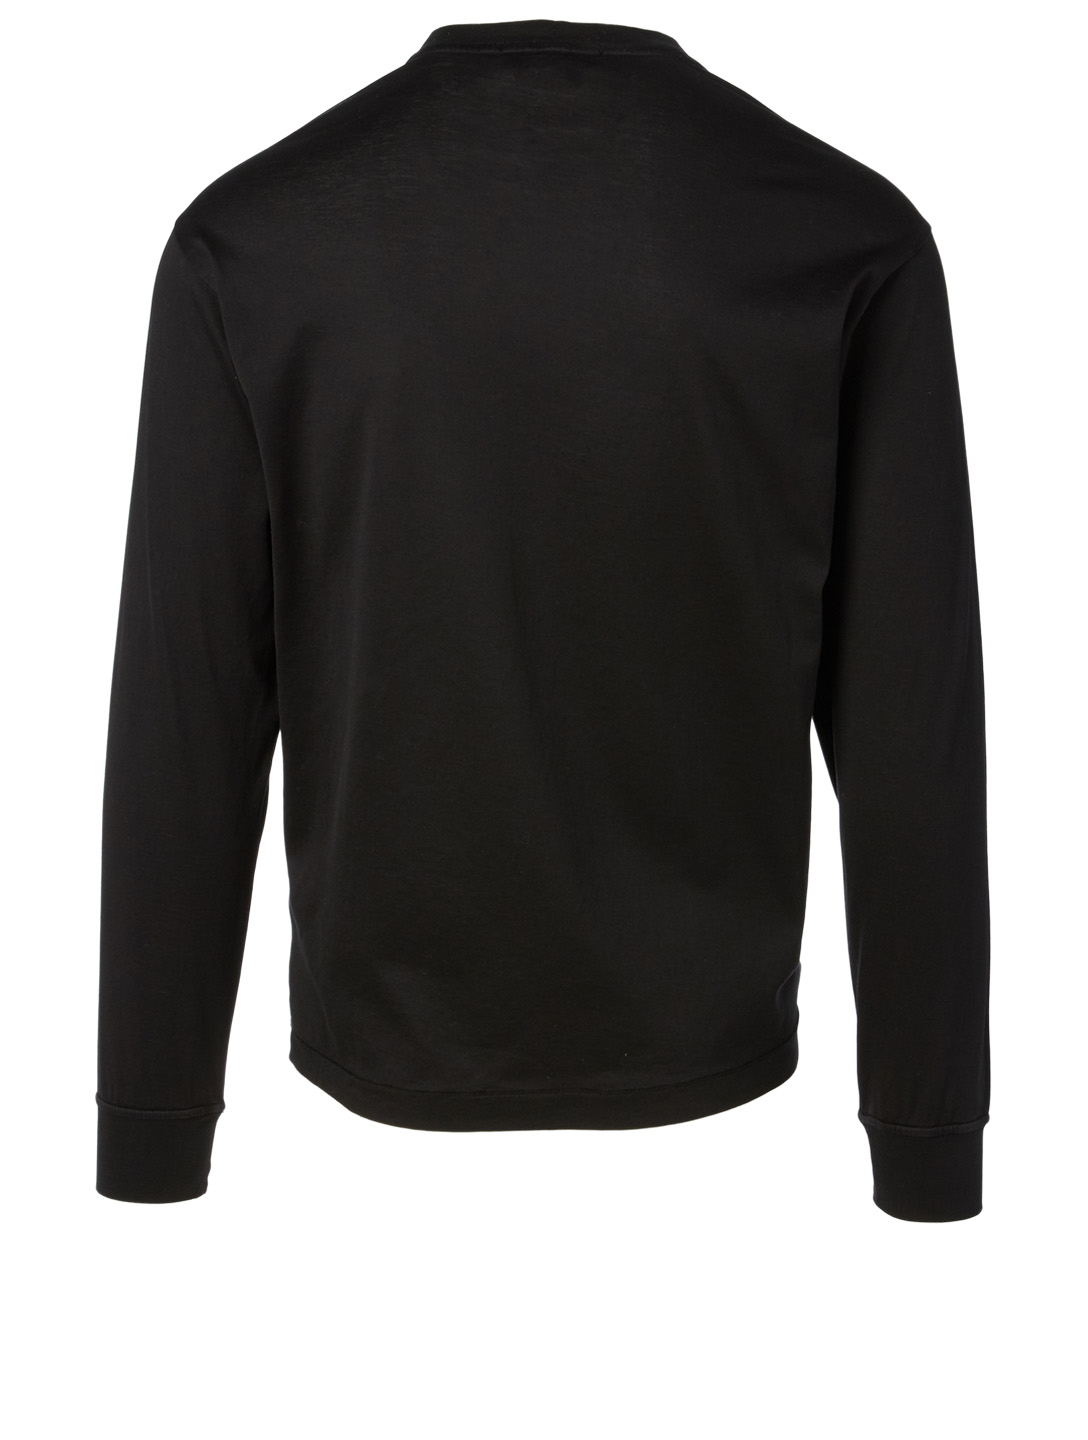 STONE ISLAND Long Sleeve T-Shirt Men's Black